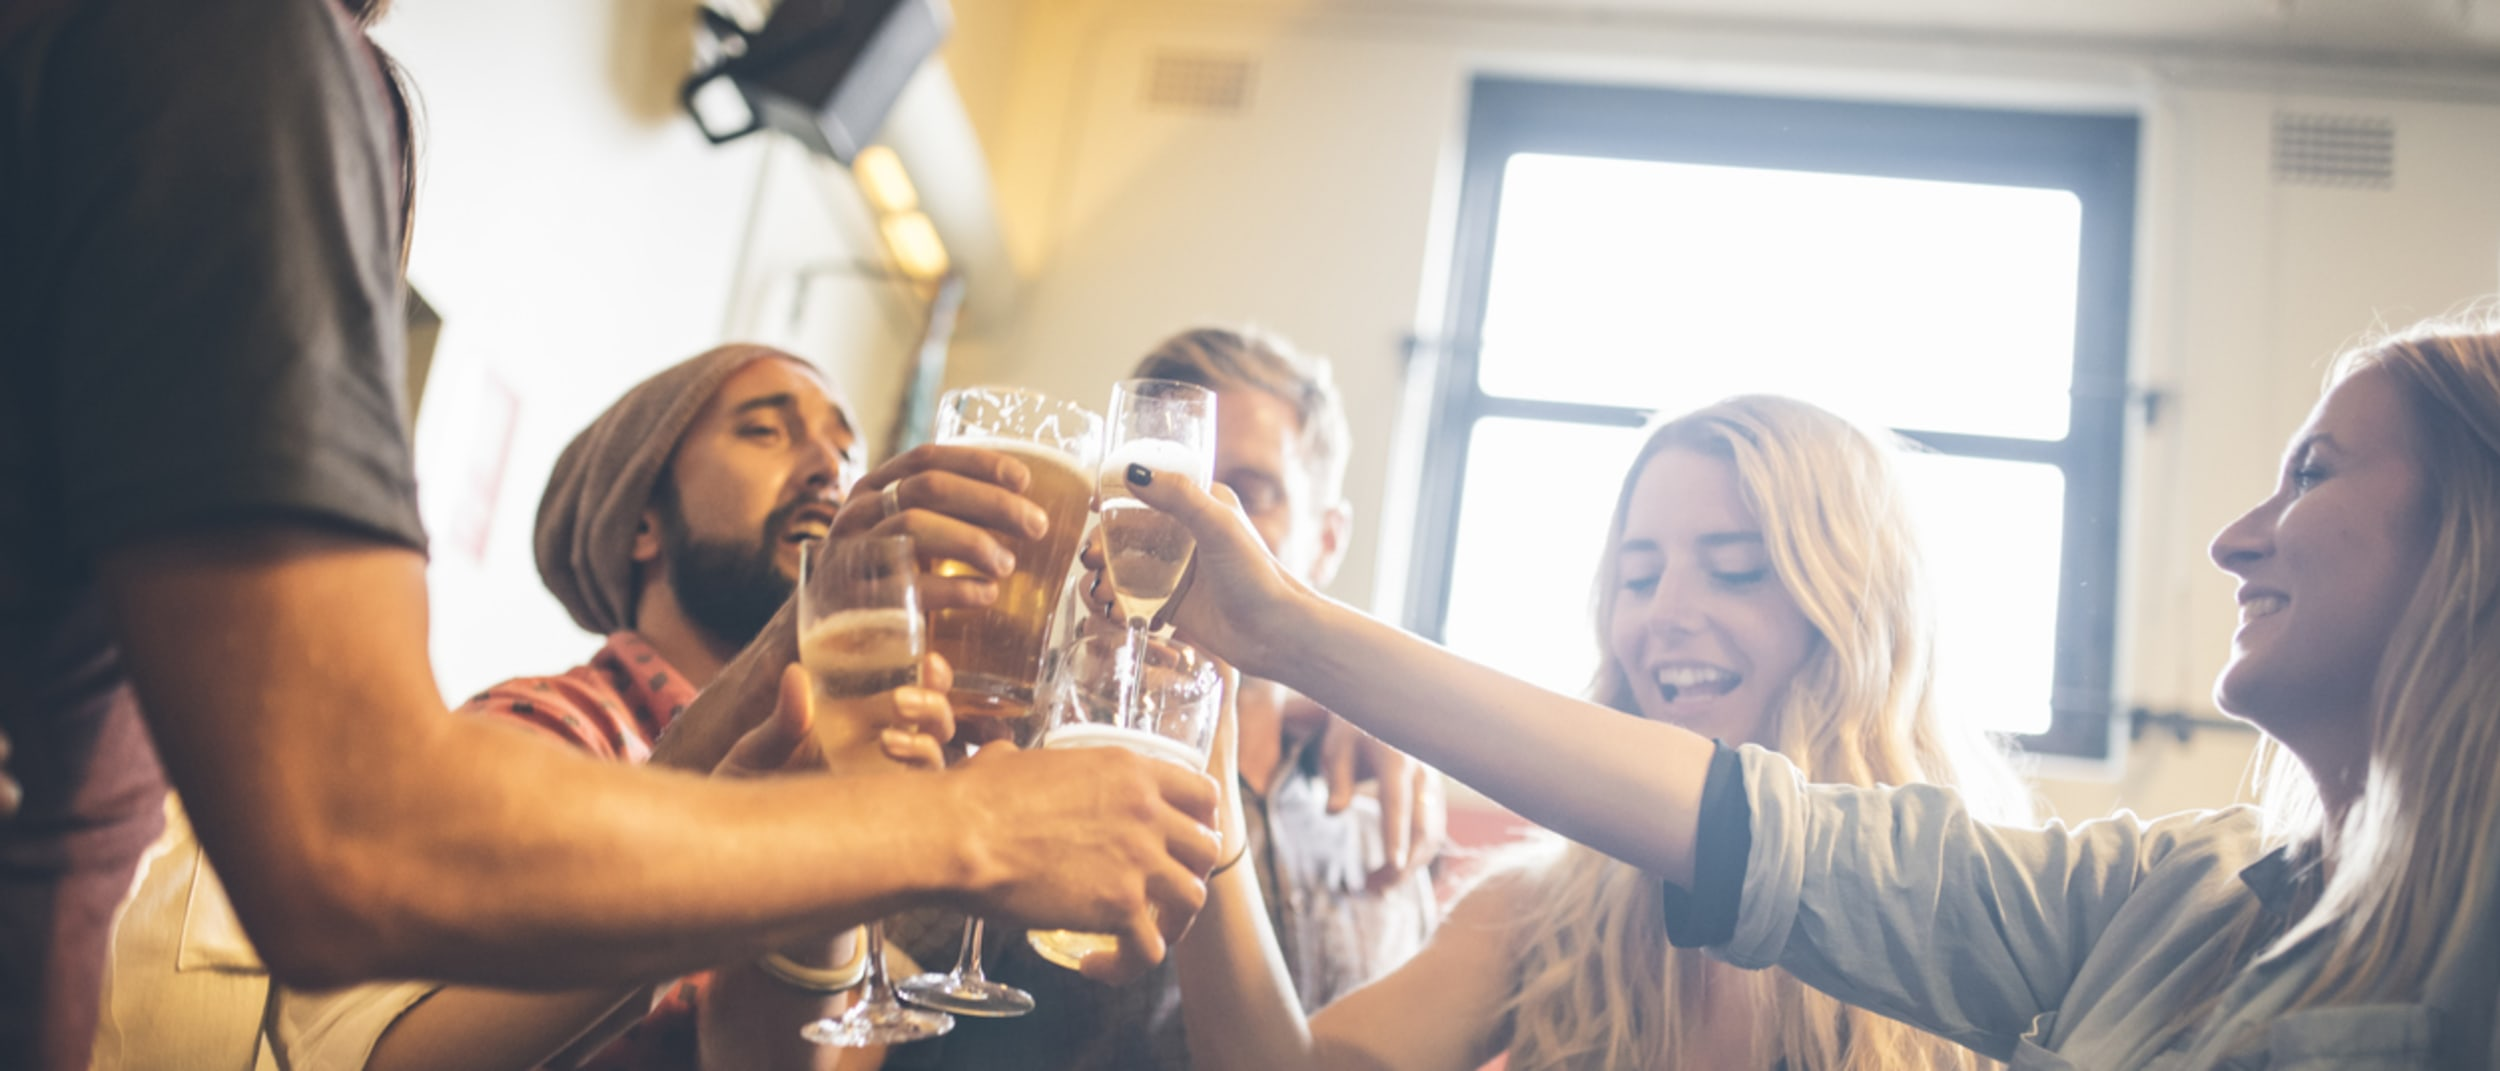 The Bavarian: End of financial year parties